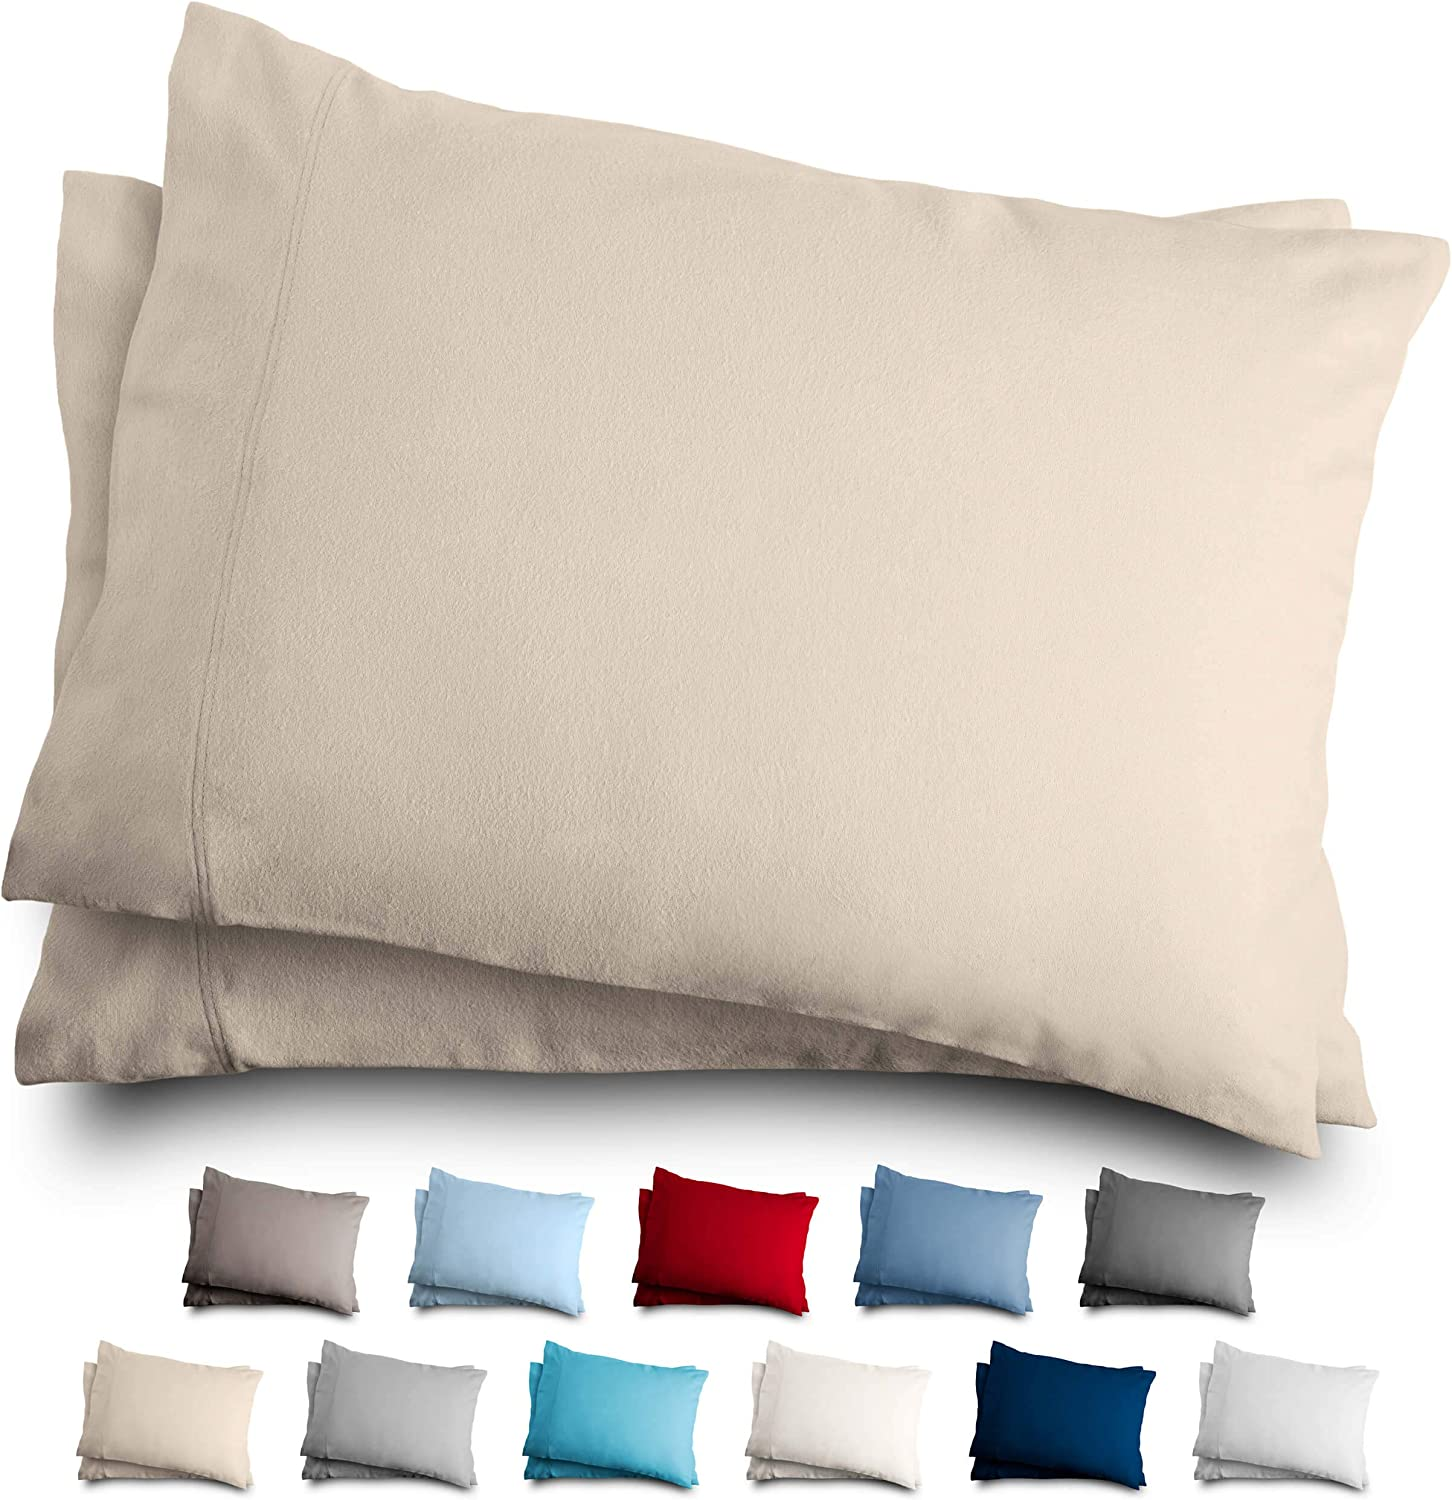 Bare Home King Flannel Pillowcase Set - 100% Cotton - Velvety Soft Heavyweight - Double Brushed Flannel (King Pillowcase Set of 2, Sand)